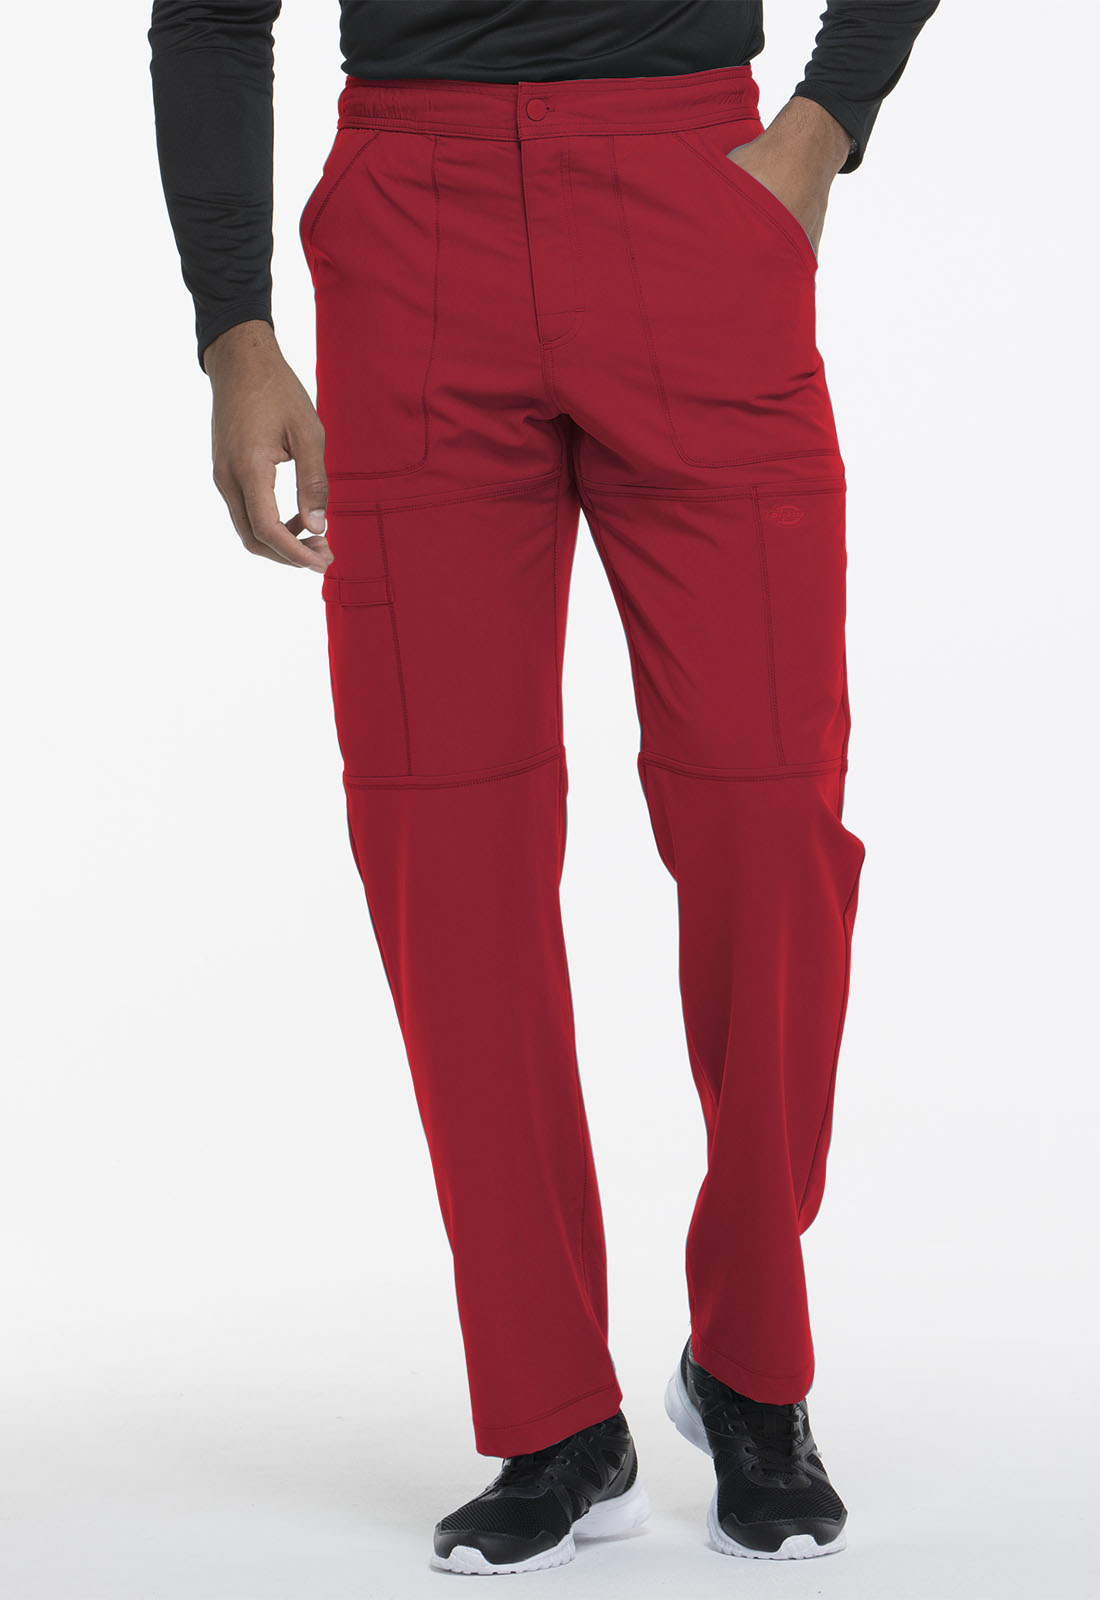 19be6dde8bd Dynamix Men's Zip Fly Cargo Pant in Red DK110S-RED from Scrubs Express